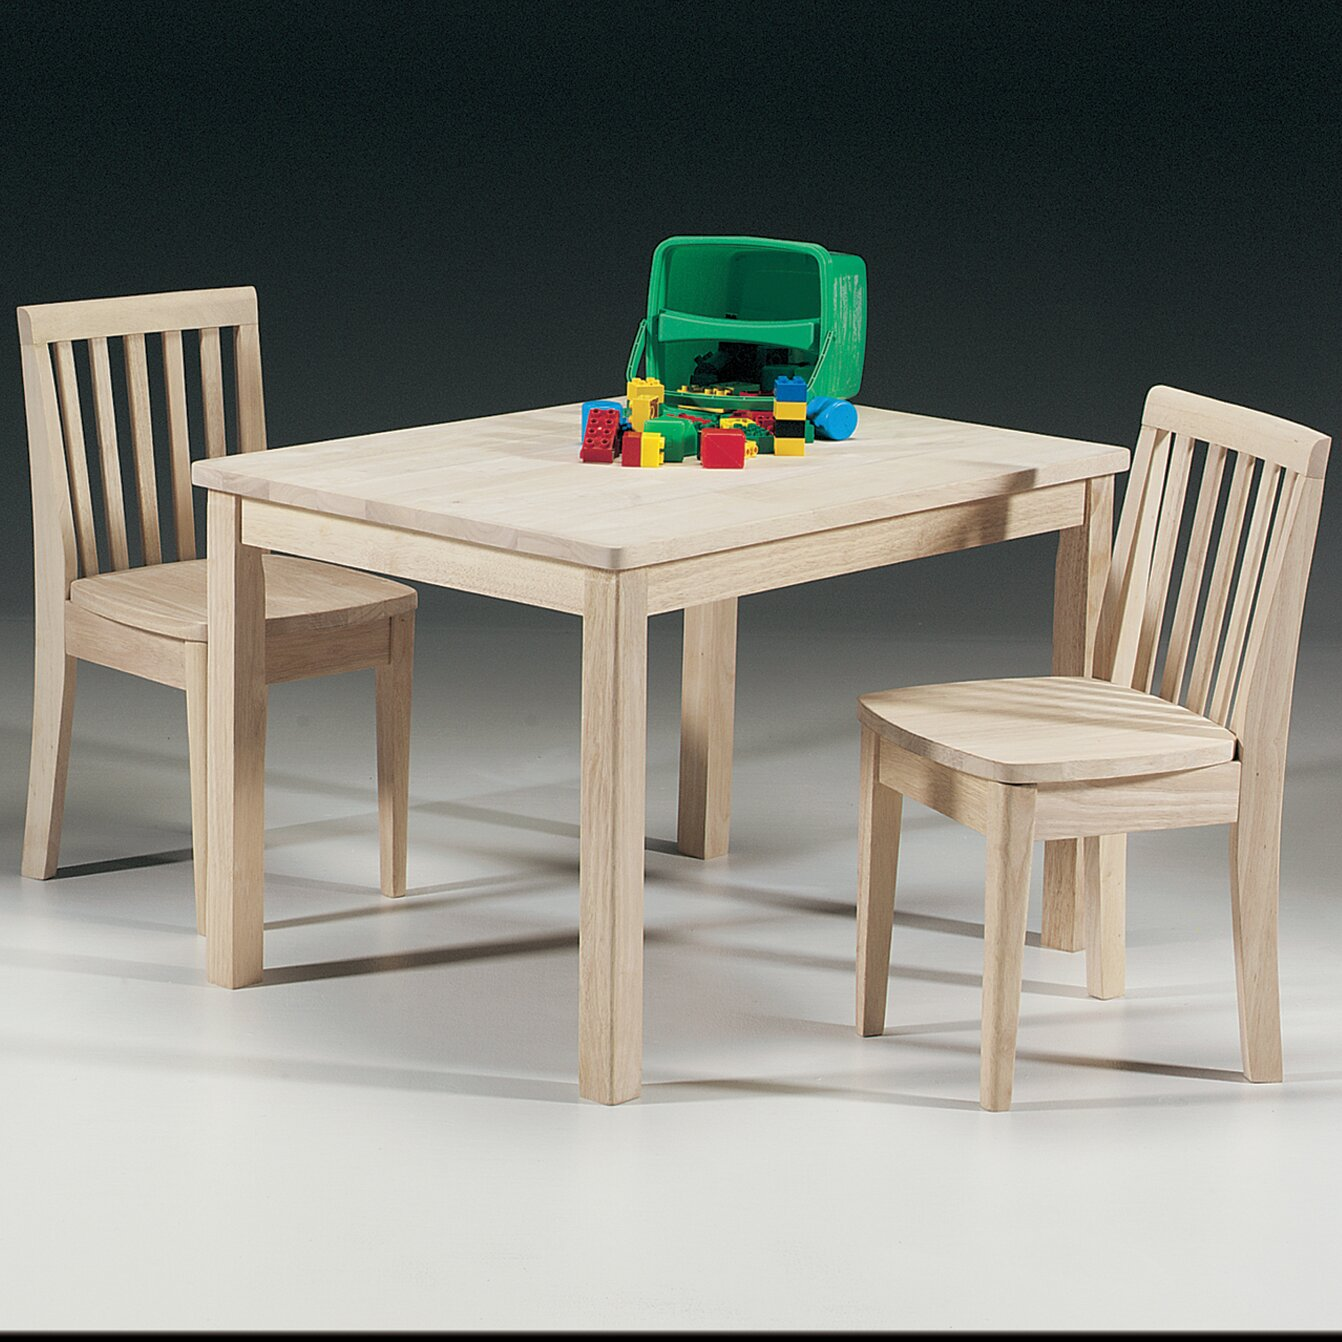 Wonderful image of International Concepts Unfinished Wood Mission Juvenile Kids Table and  with #B59616 color and 1342x1342 pixels